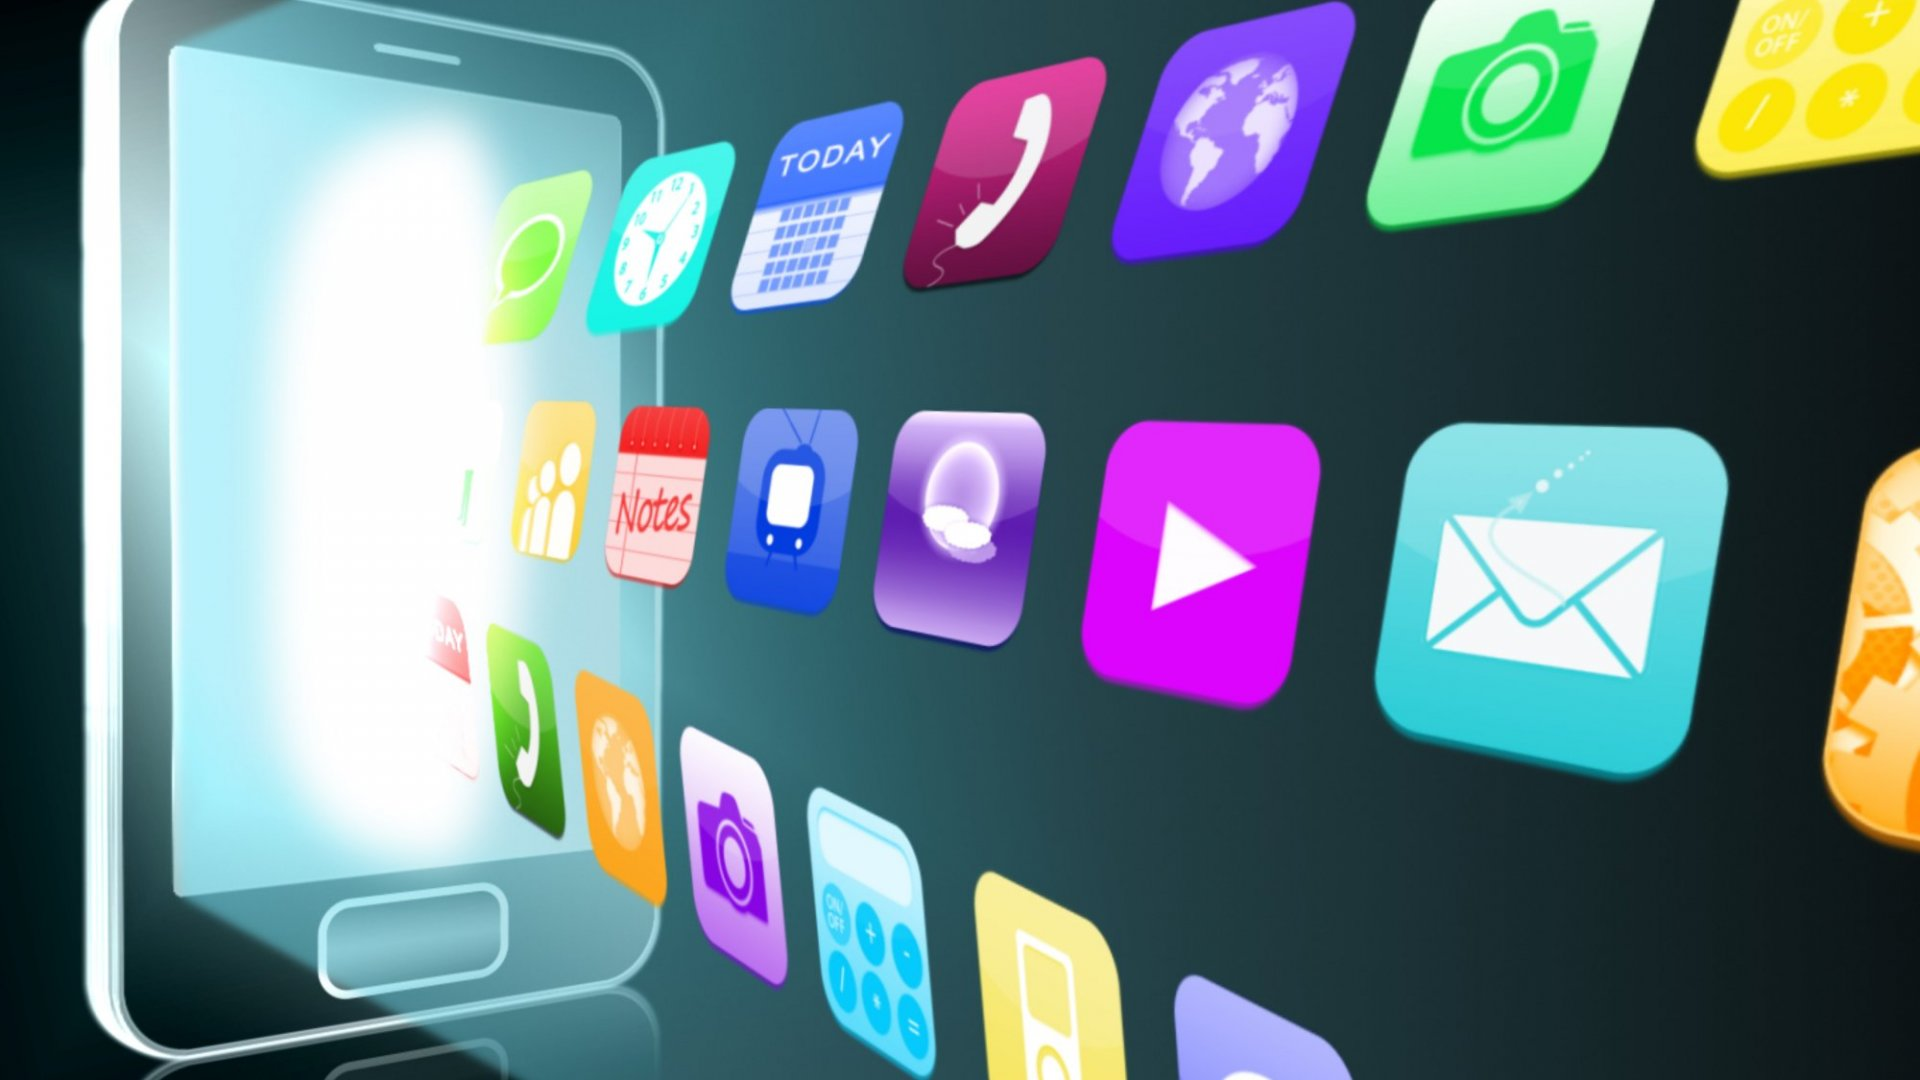 How to get your app to stand out in the Age of App Overload